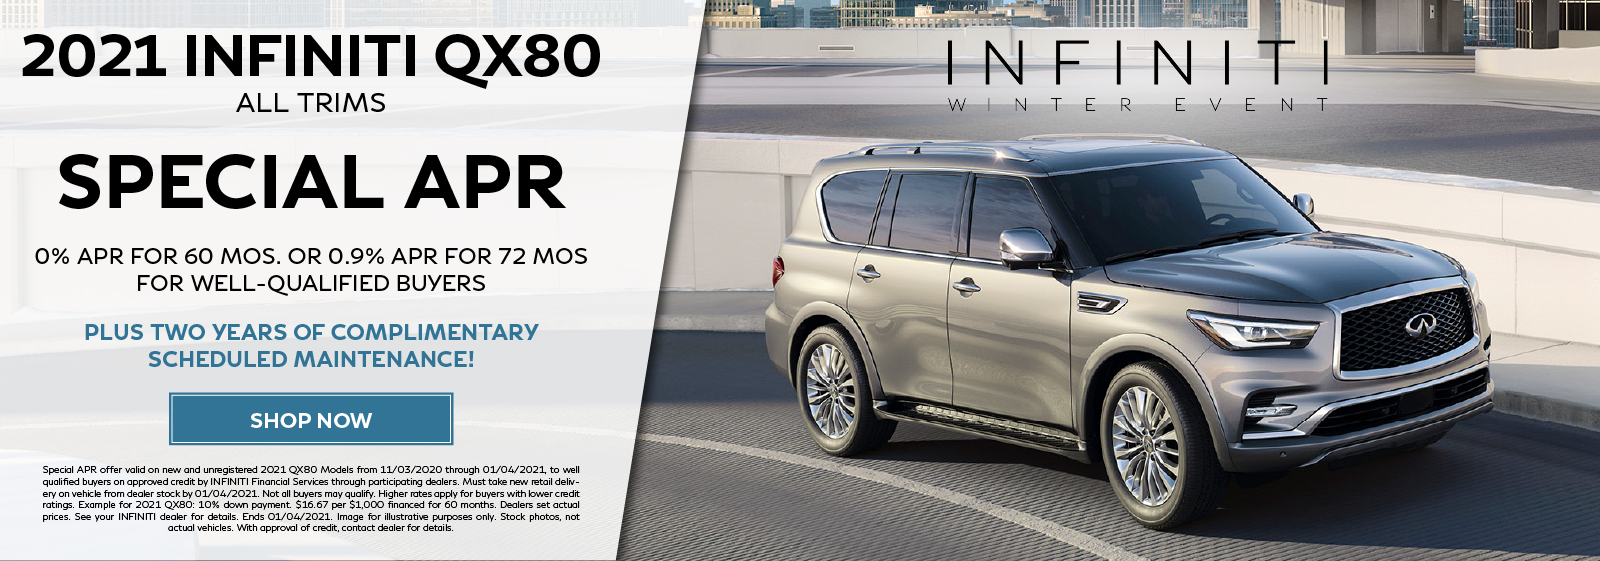 Well-qualified buyers can get 0% APR for 60 months or 0.9% APR for 72 months on all new 2021 QX80 models plus two years of complimentary scheduled maintenance. Click to shop now.